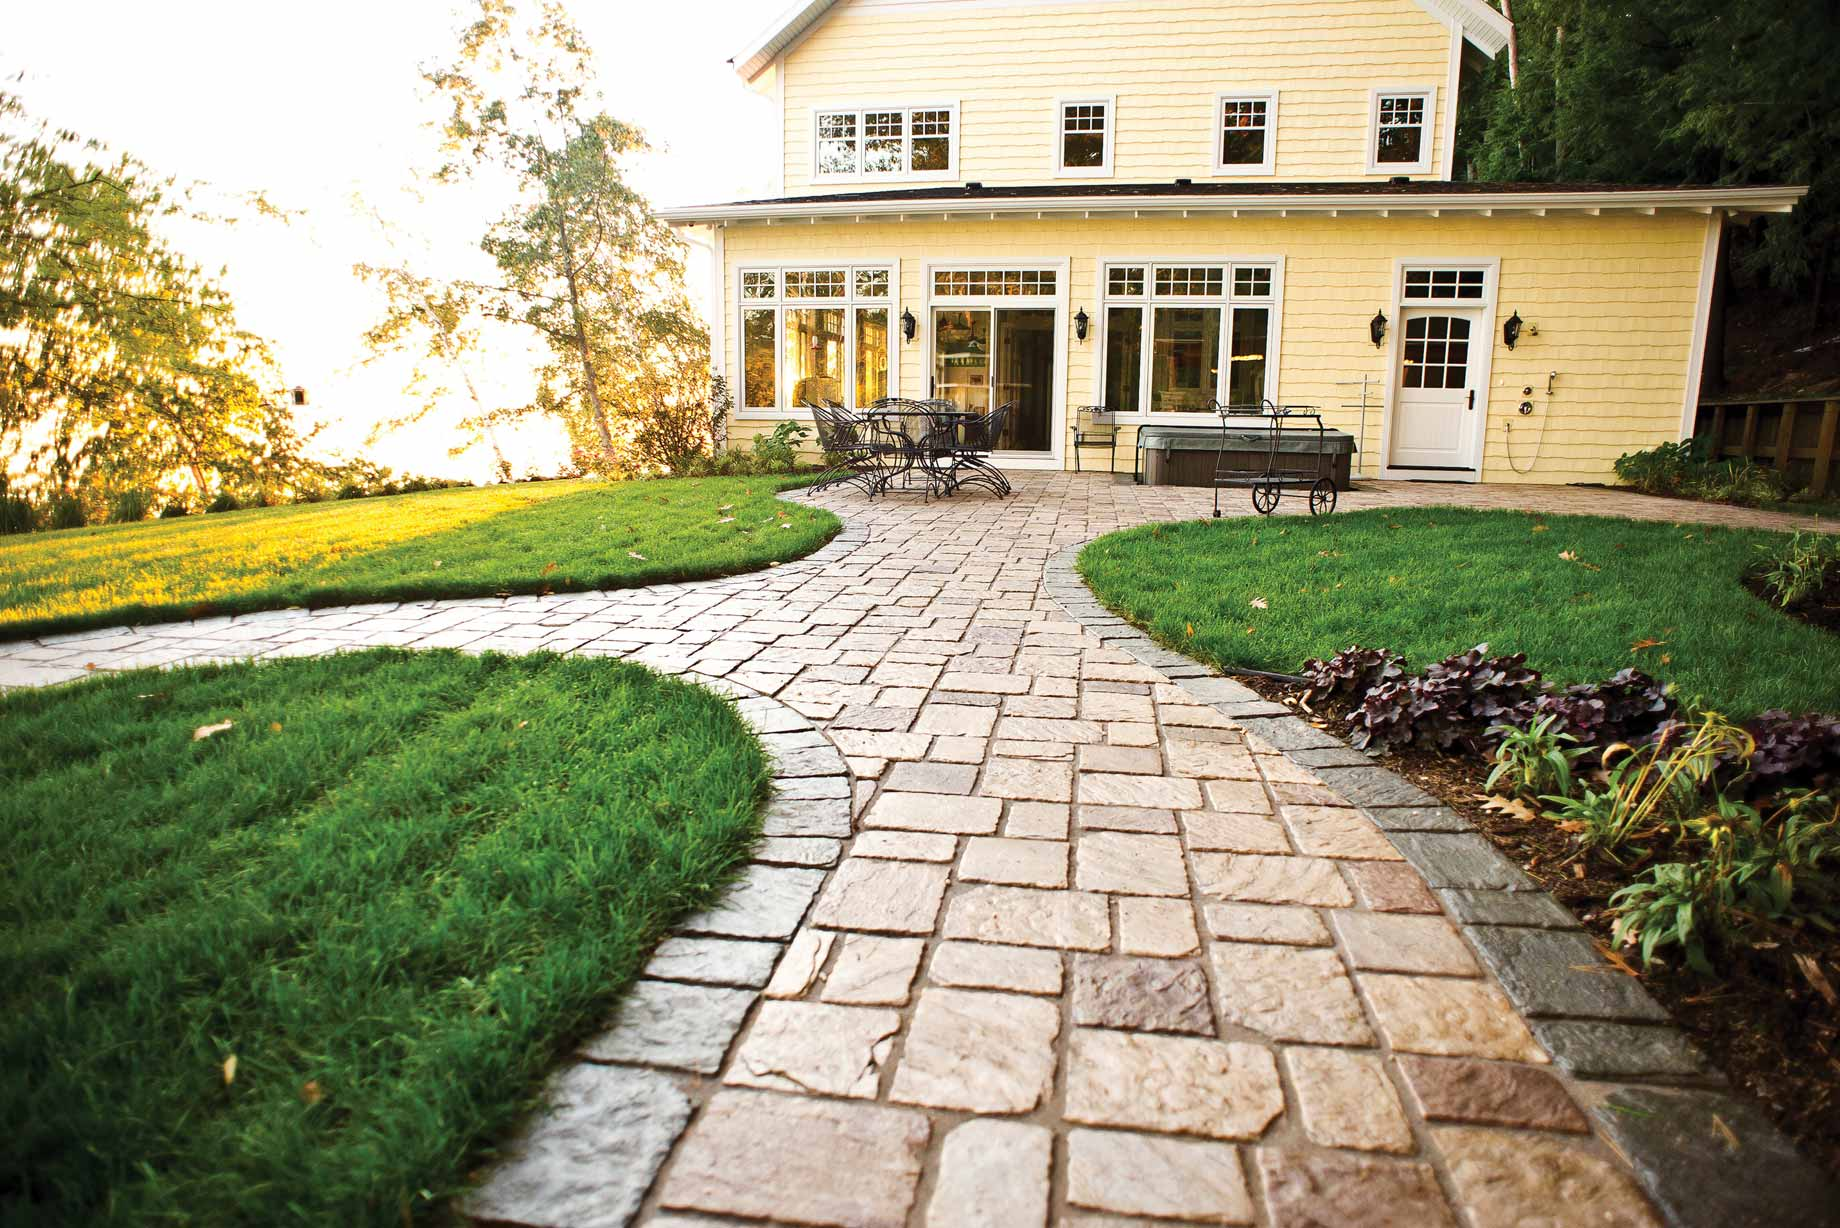 Old Mission pavers on residential home